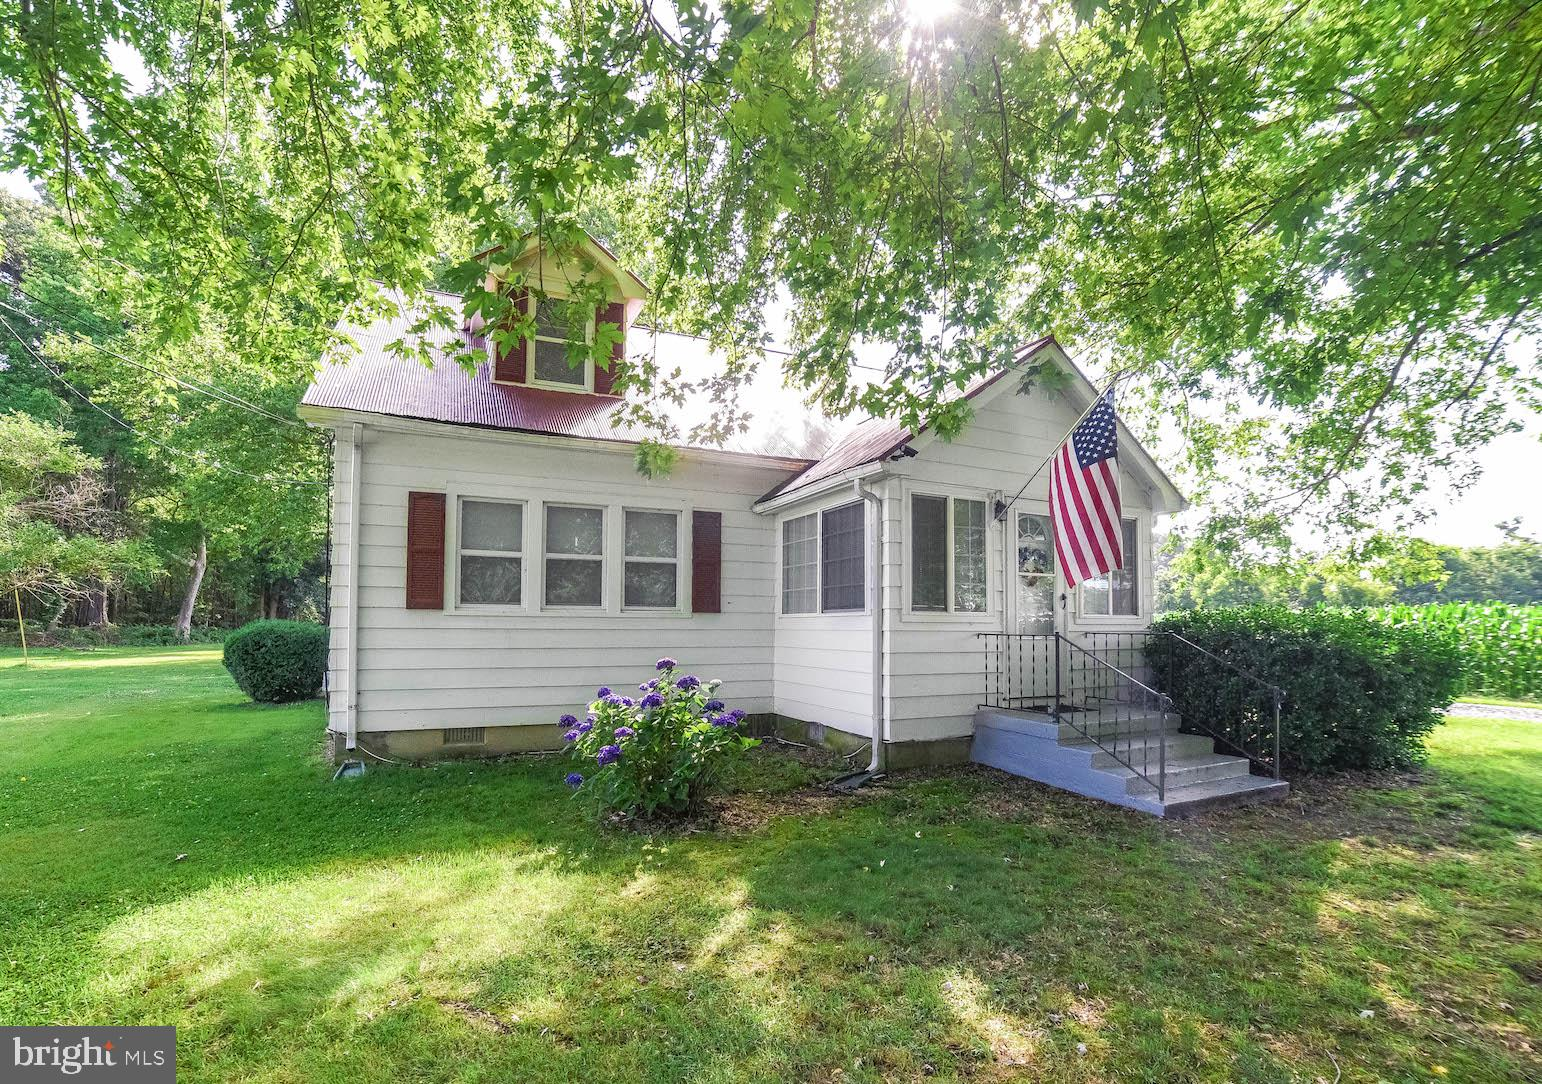 20990 COLTON POINT ROAD, COLTONS POINT, MD 20626